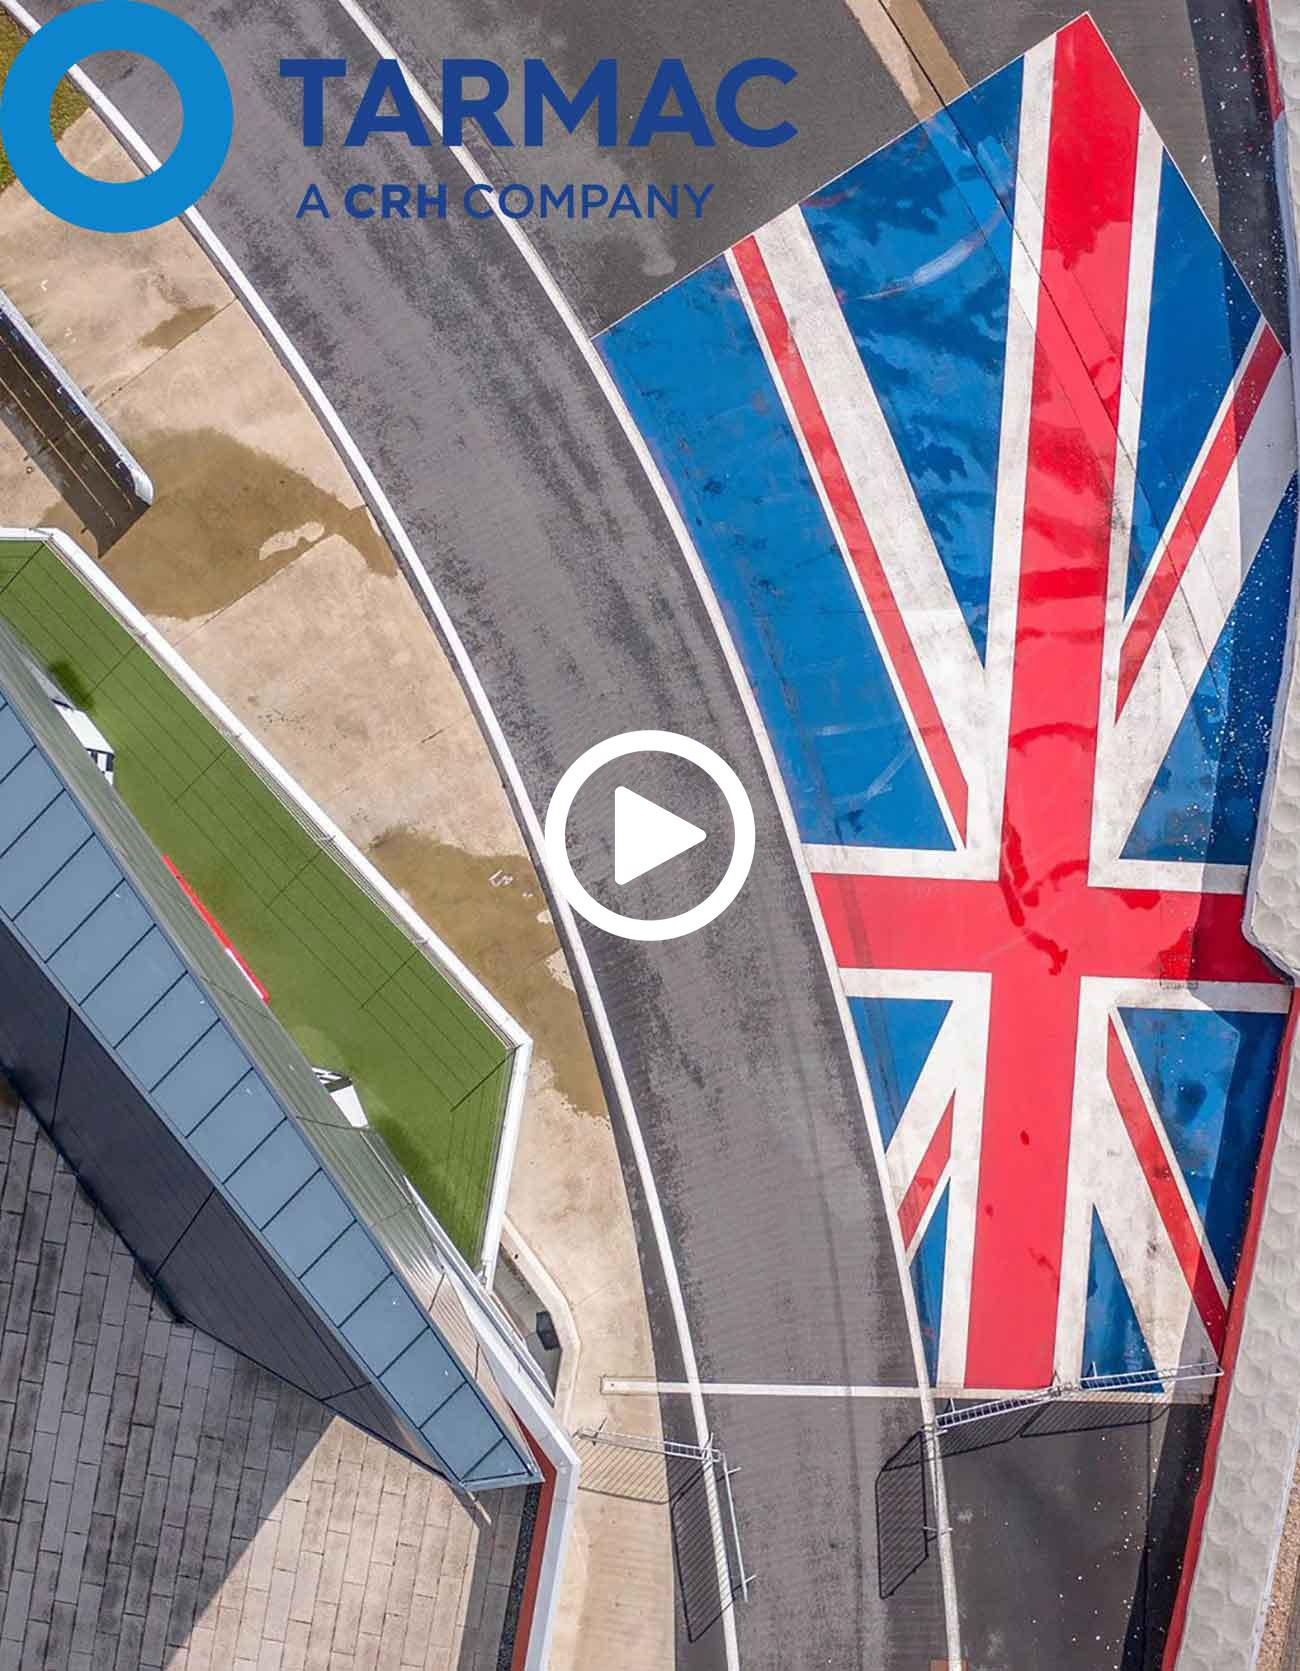 bird's eye view of silverstone podium drone photo